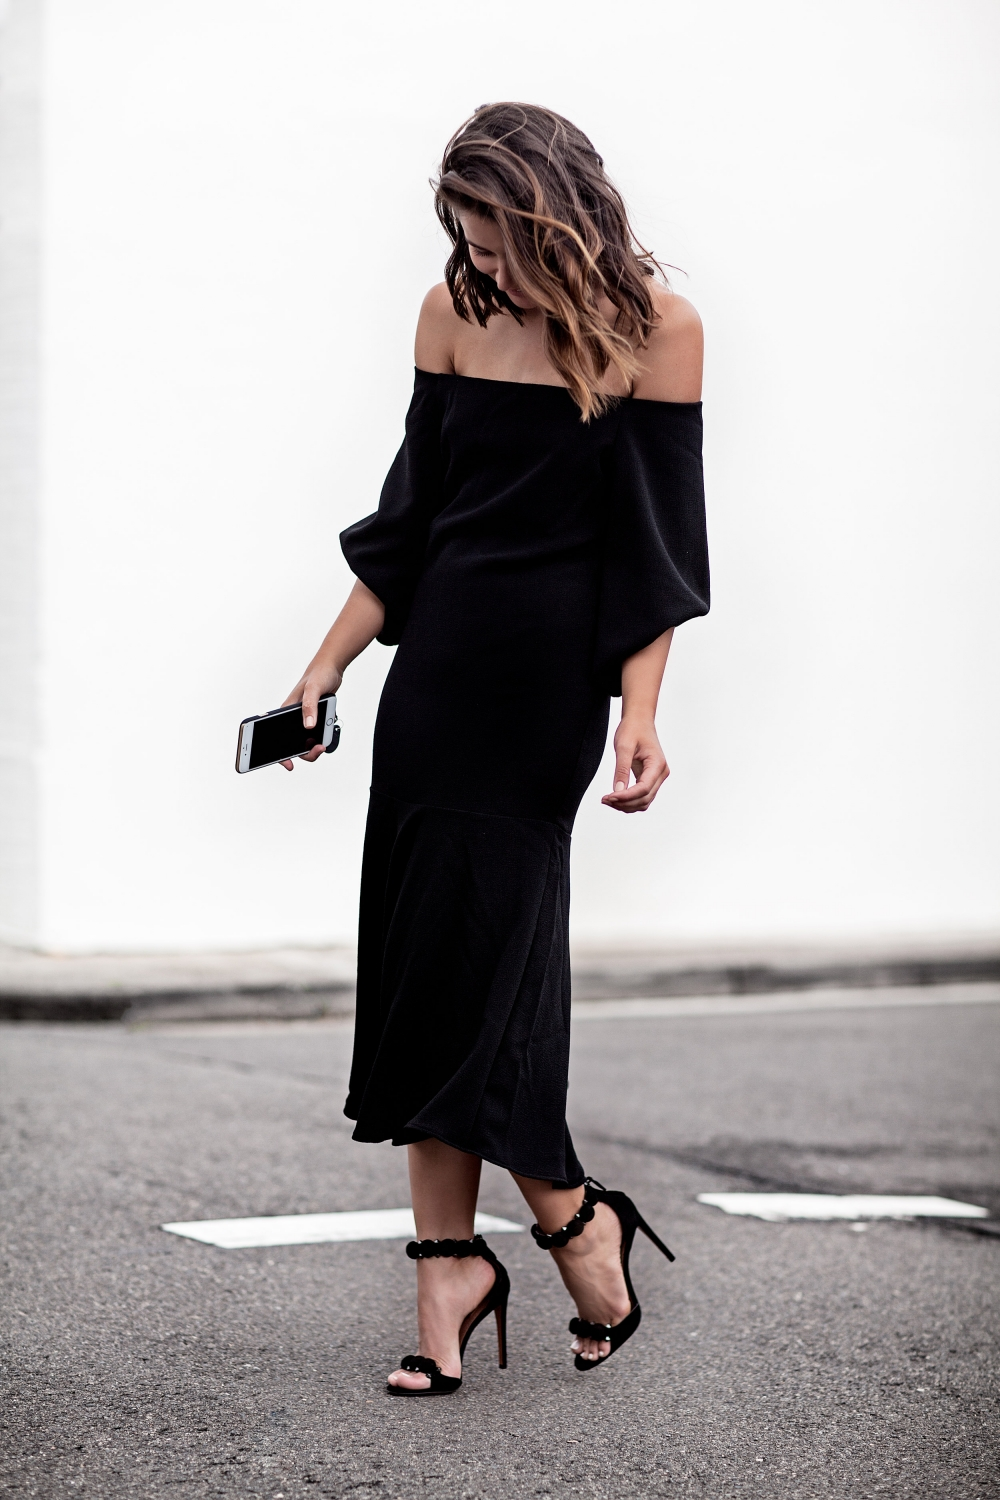 off the shoulder black dress | outfit | style | HarperandHarley